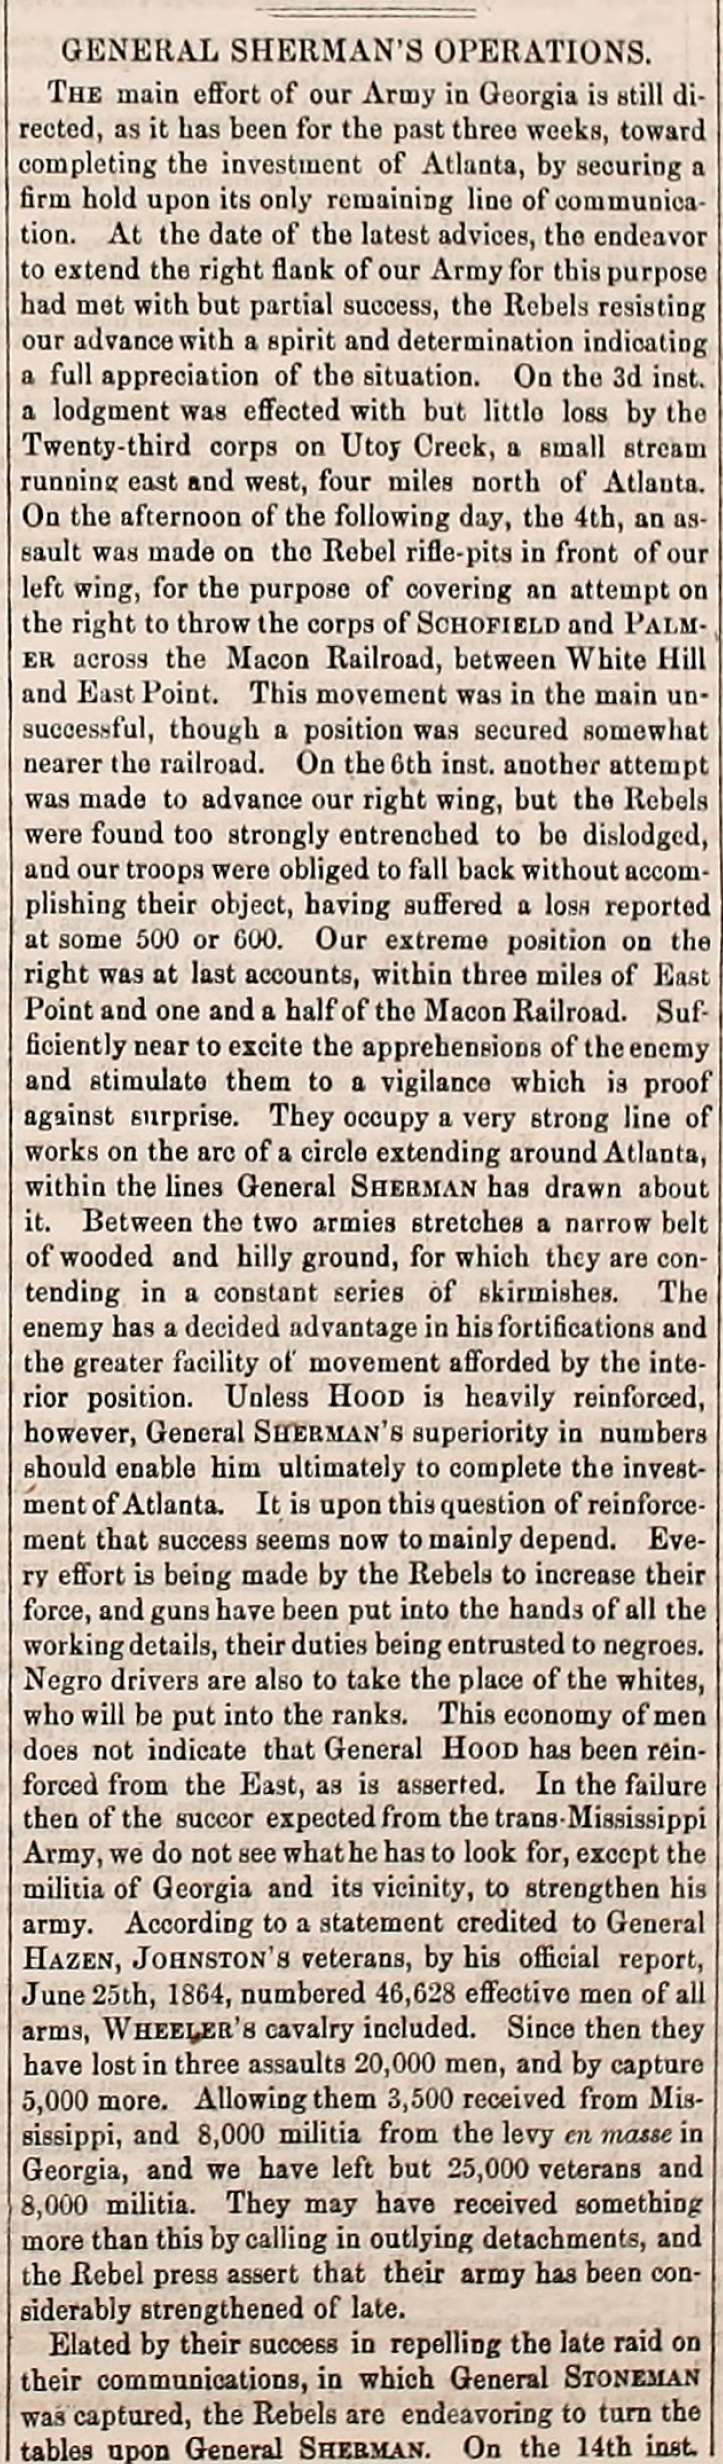 Army Navy Journal Article on the early days of Sherman's March